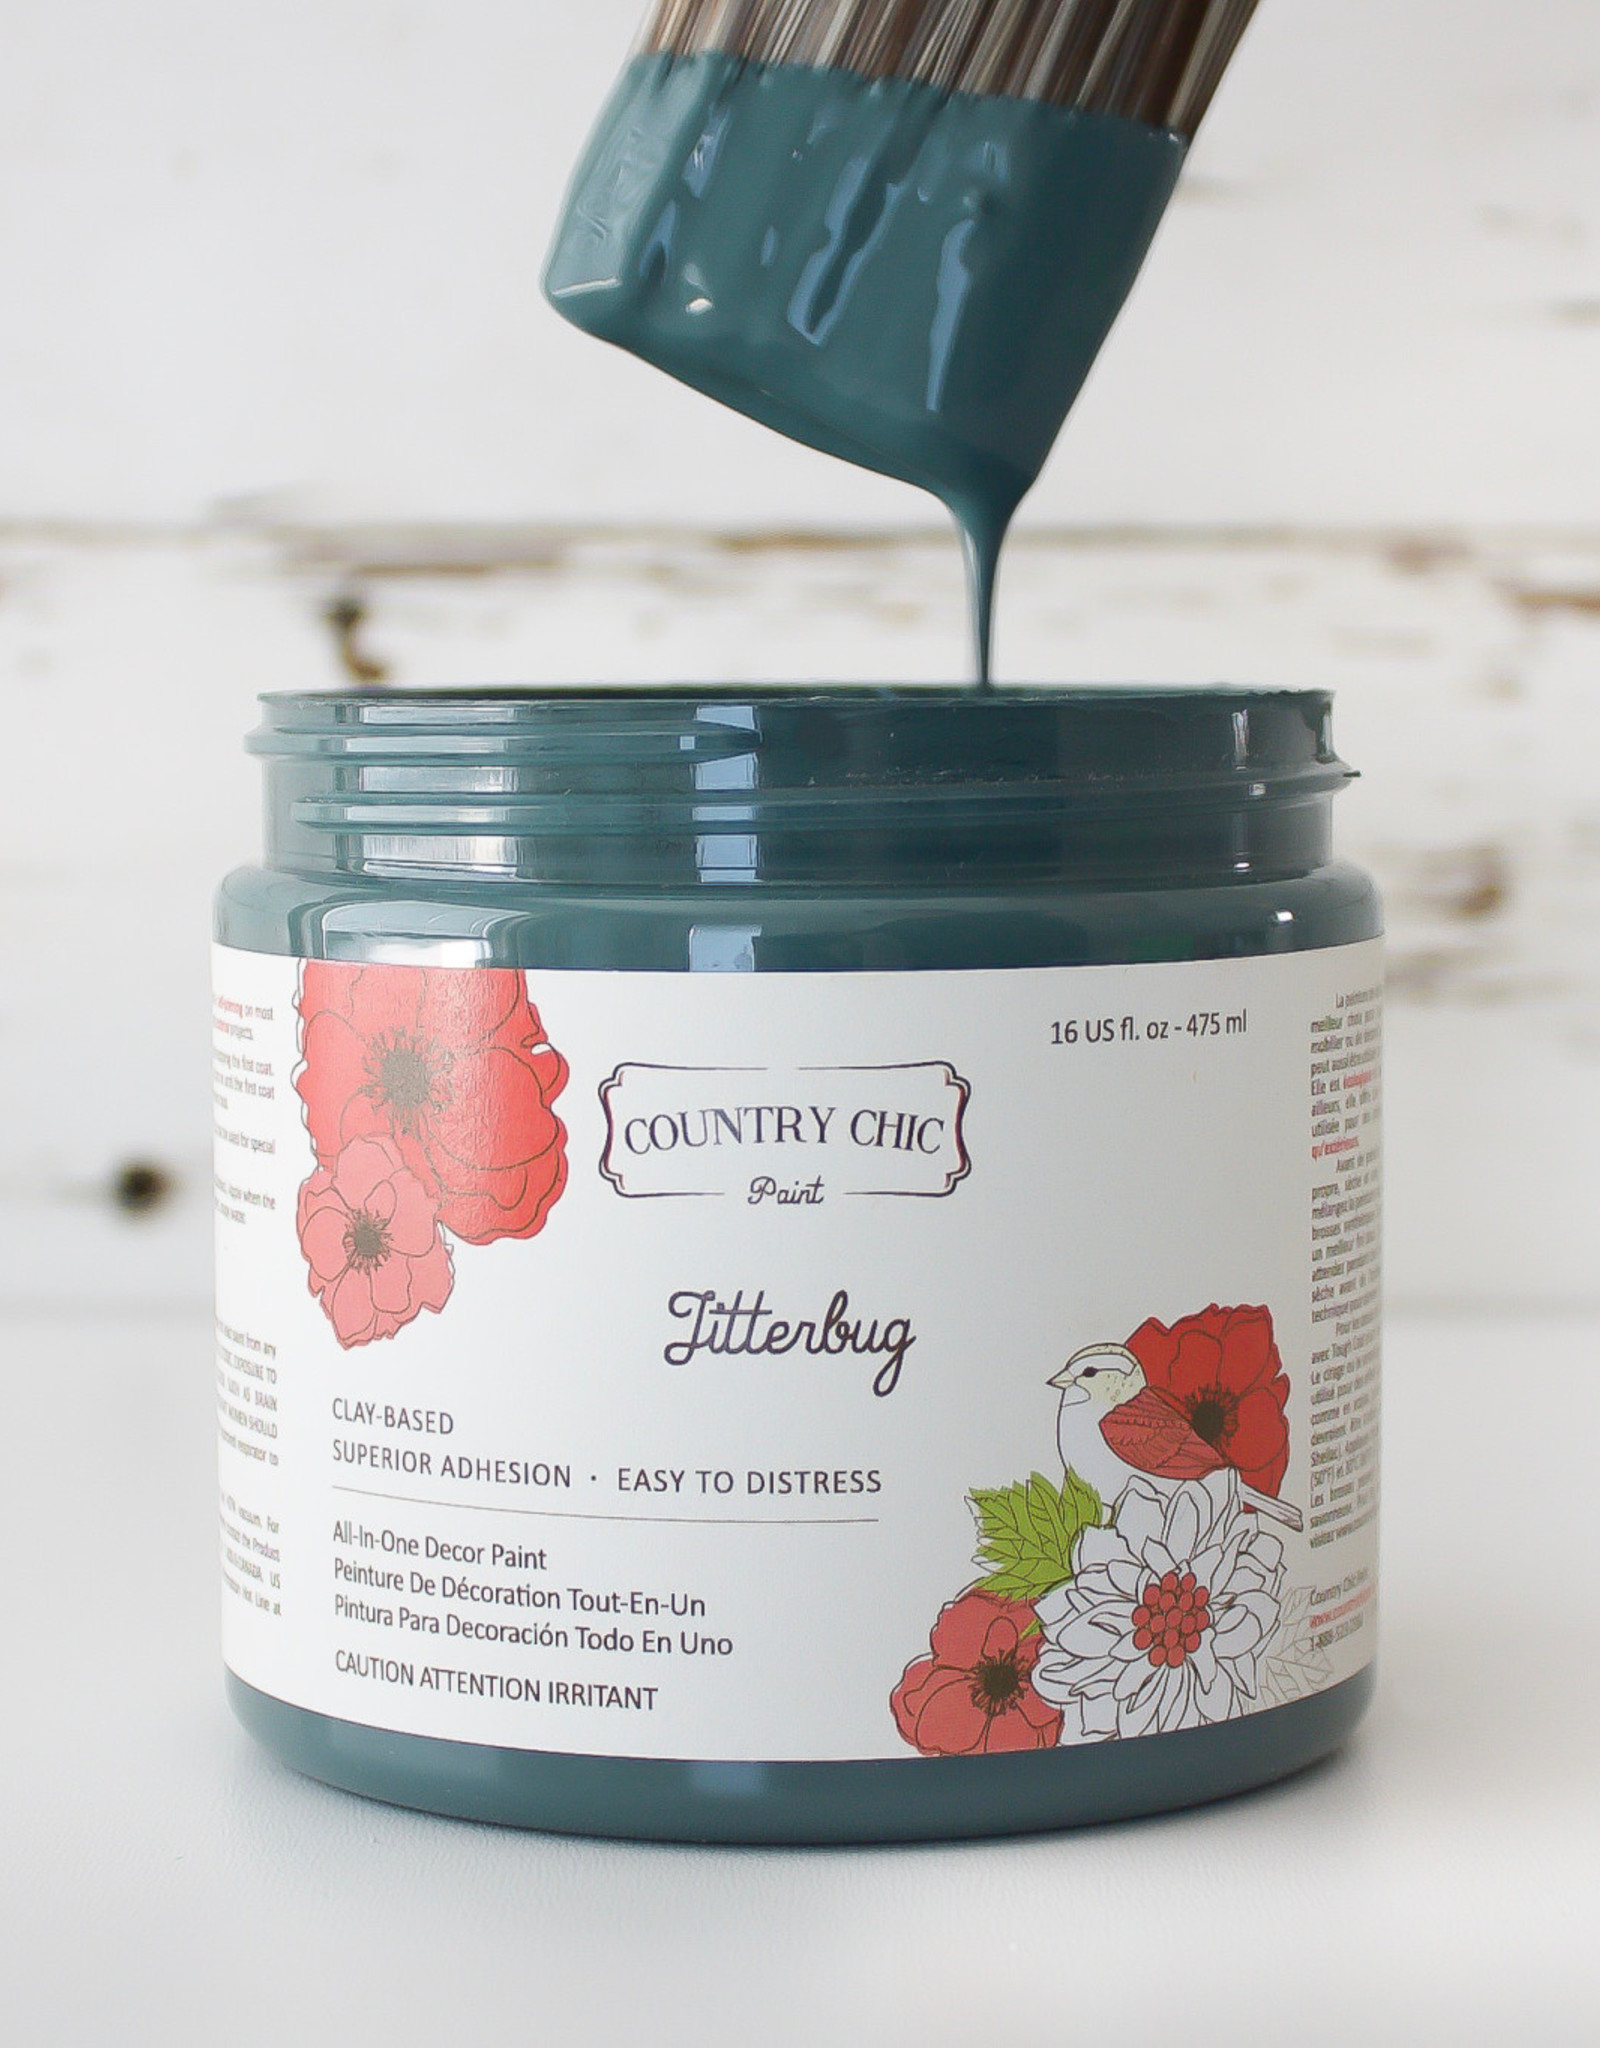 Country Chic Country Chic Paint Sample - 4oz Jitterbug